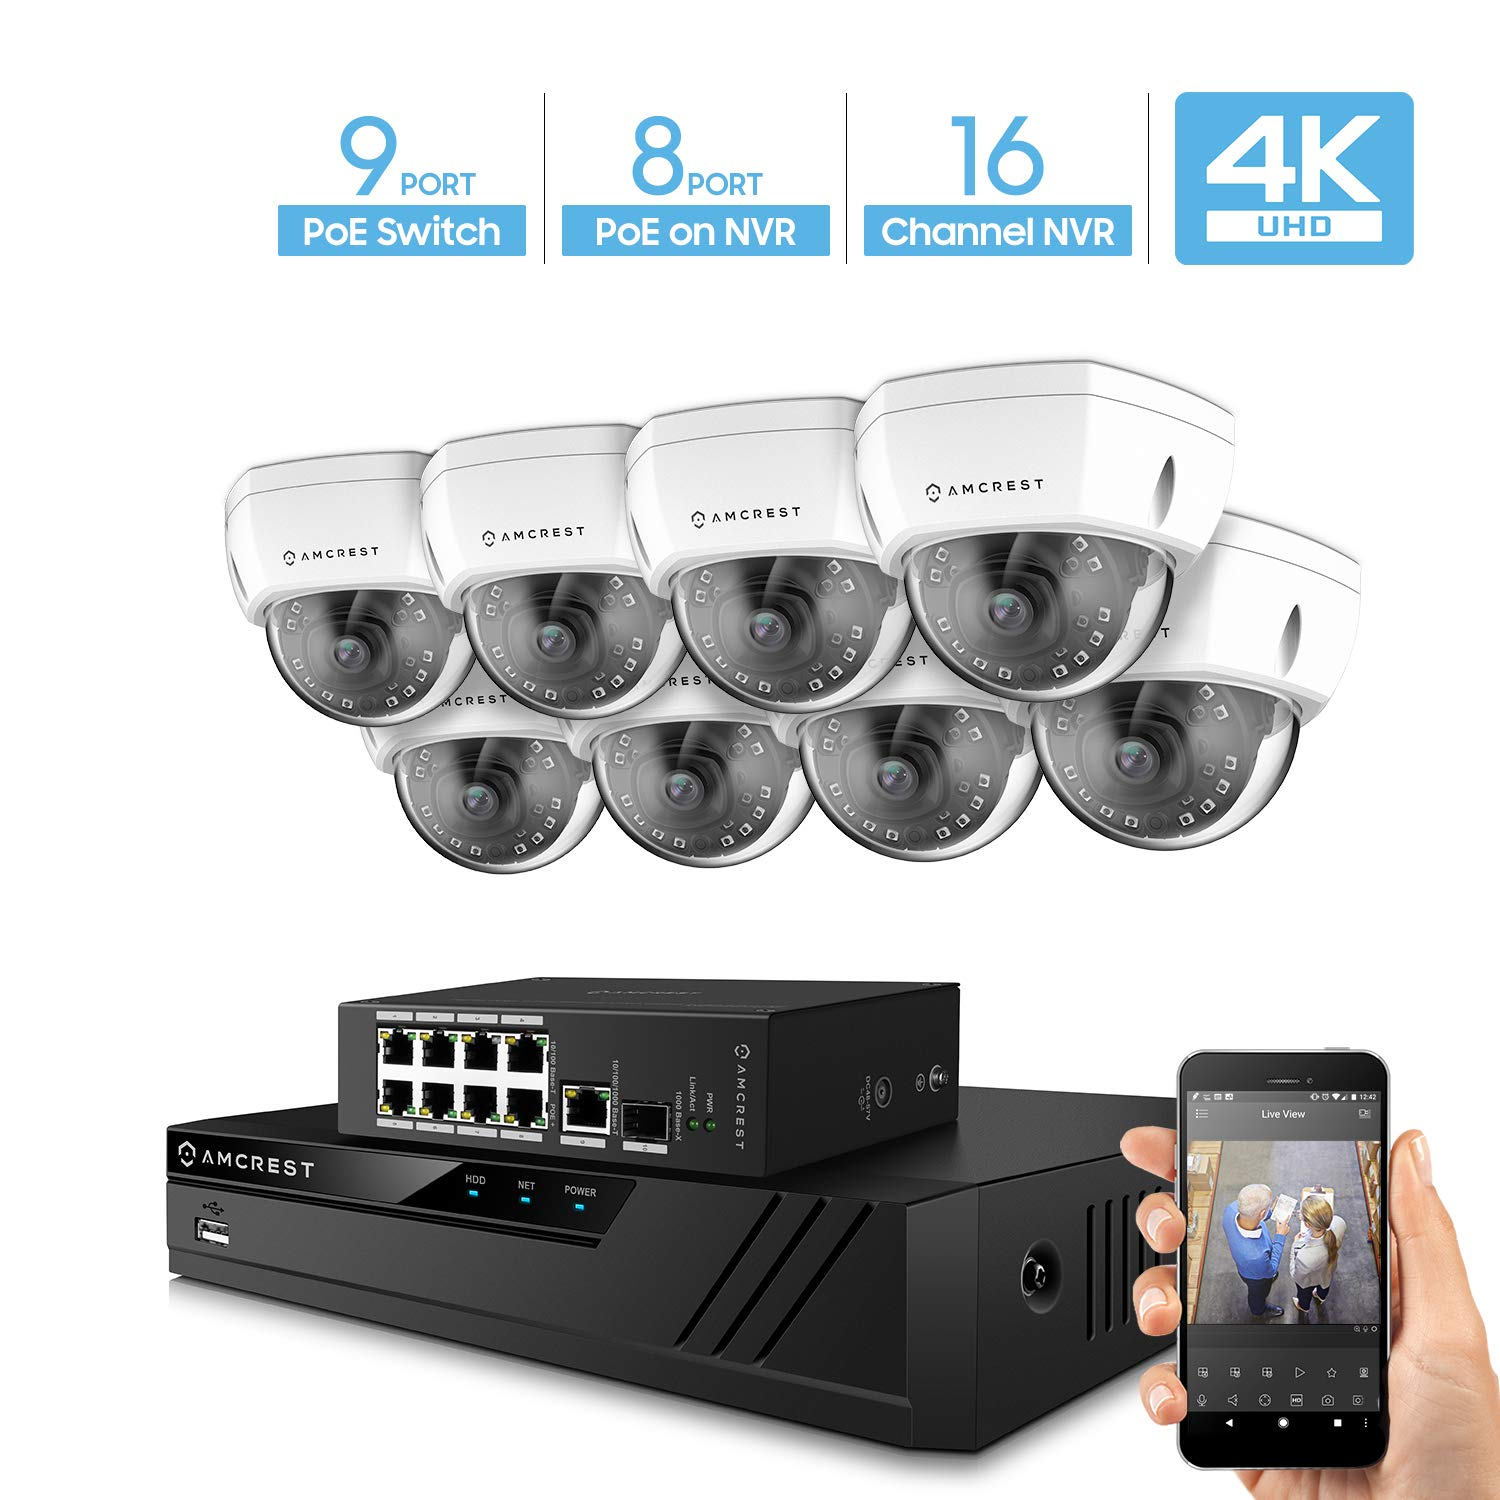 Amcrest 4K UltraHD Video Security Camera System w 4K 16CH PoE NVR, 8 x 4K Dome IP PoE Cameras, 9-Port PoE Switch w Gigabit Uplink, Hard Drive Not Included Supports up to 6TB White